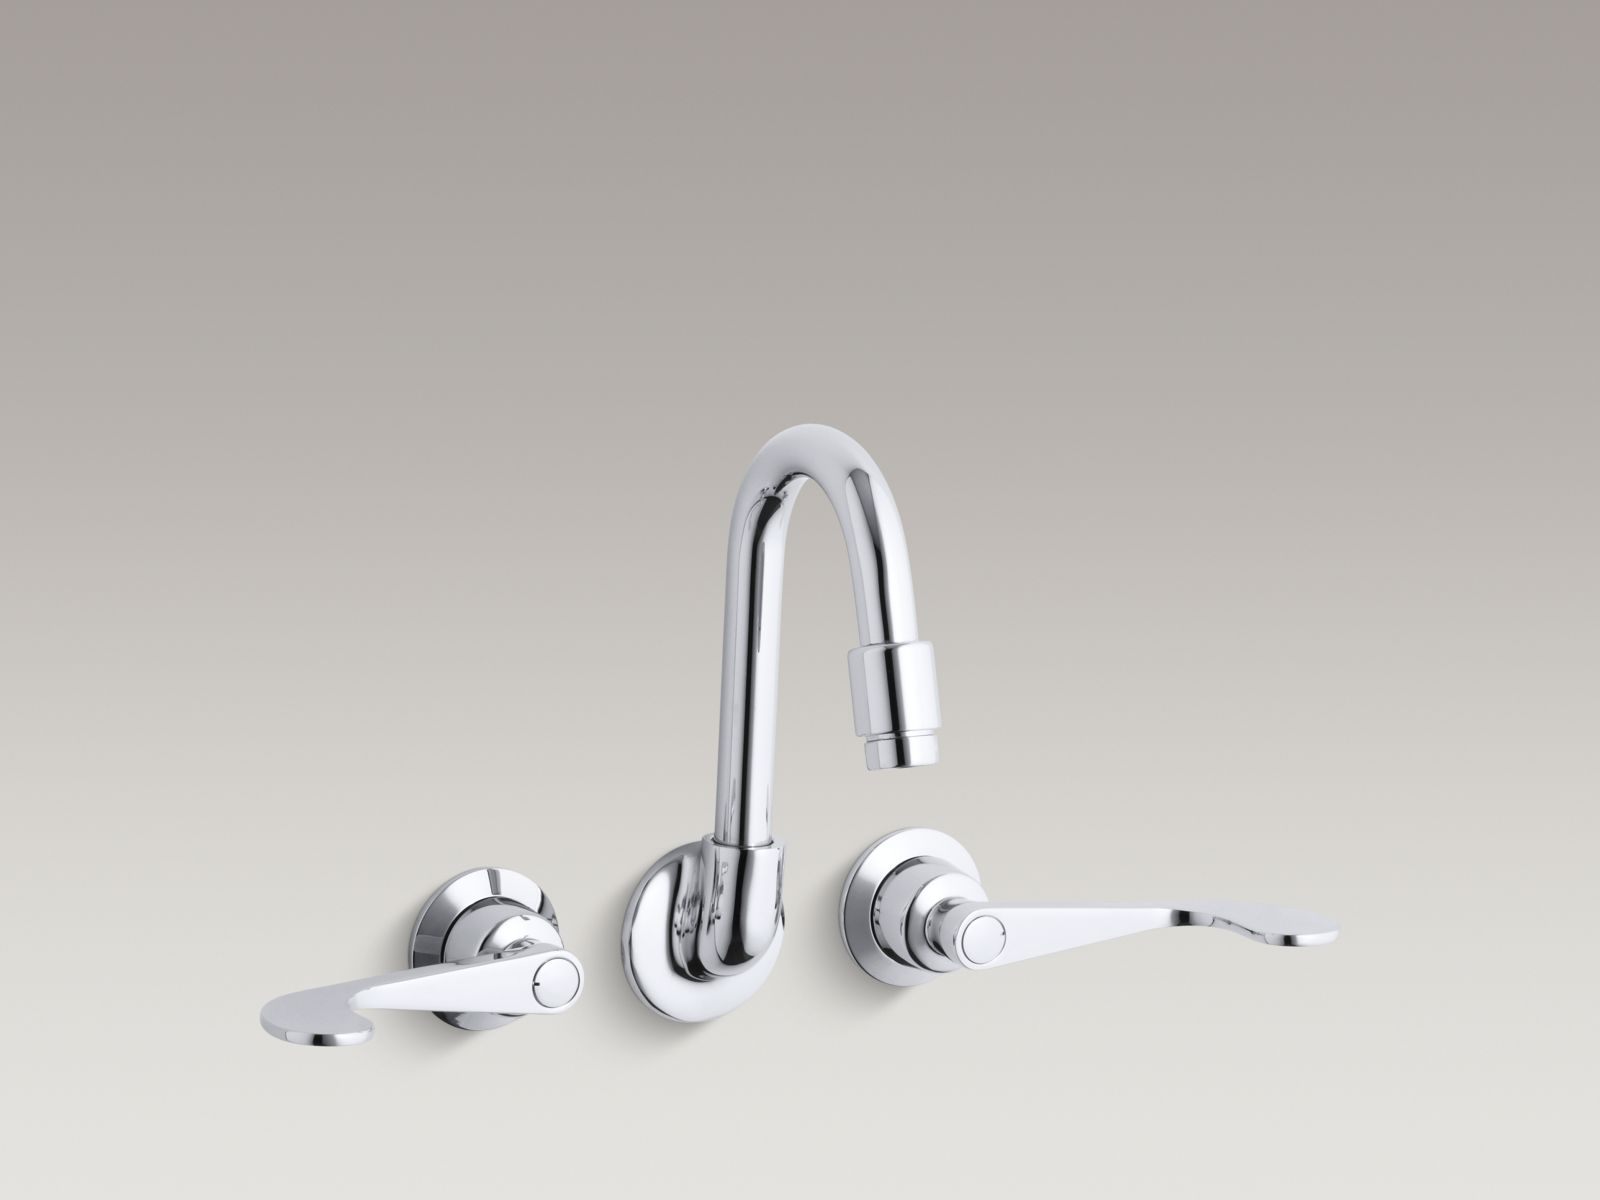 Kohler K-7302-5A-CP Triton Shelf-back Double Wristblade Lever Handle Sink Faucet Polished Chrome